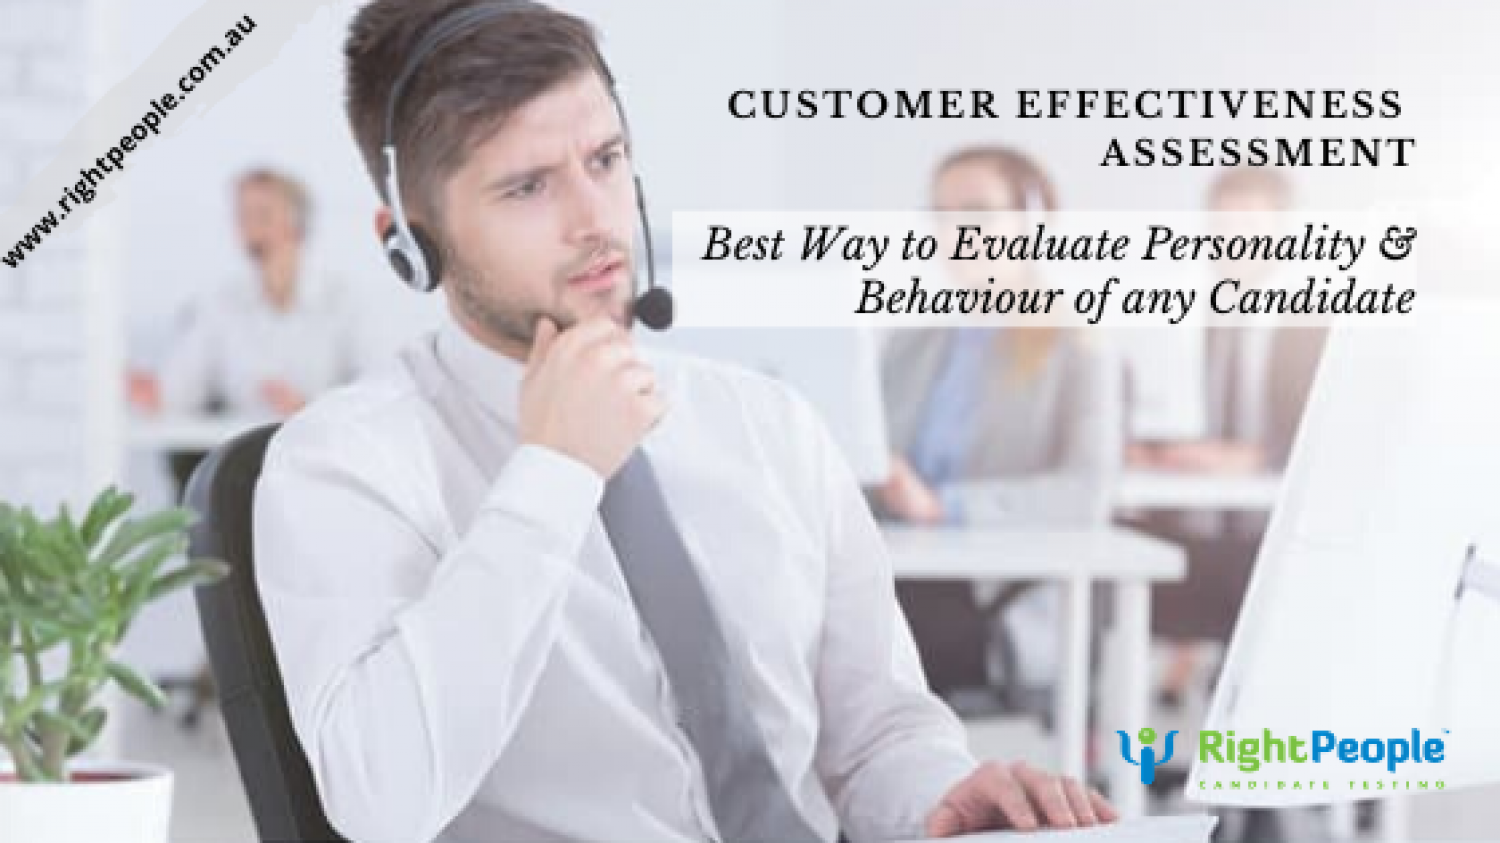 Customer Effectiveness Assessment: Evaluate Personality and Behaviour of any Candidate Infographic